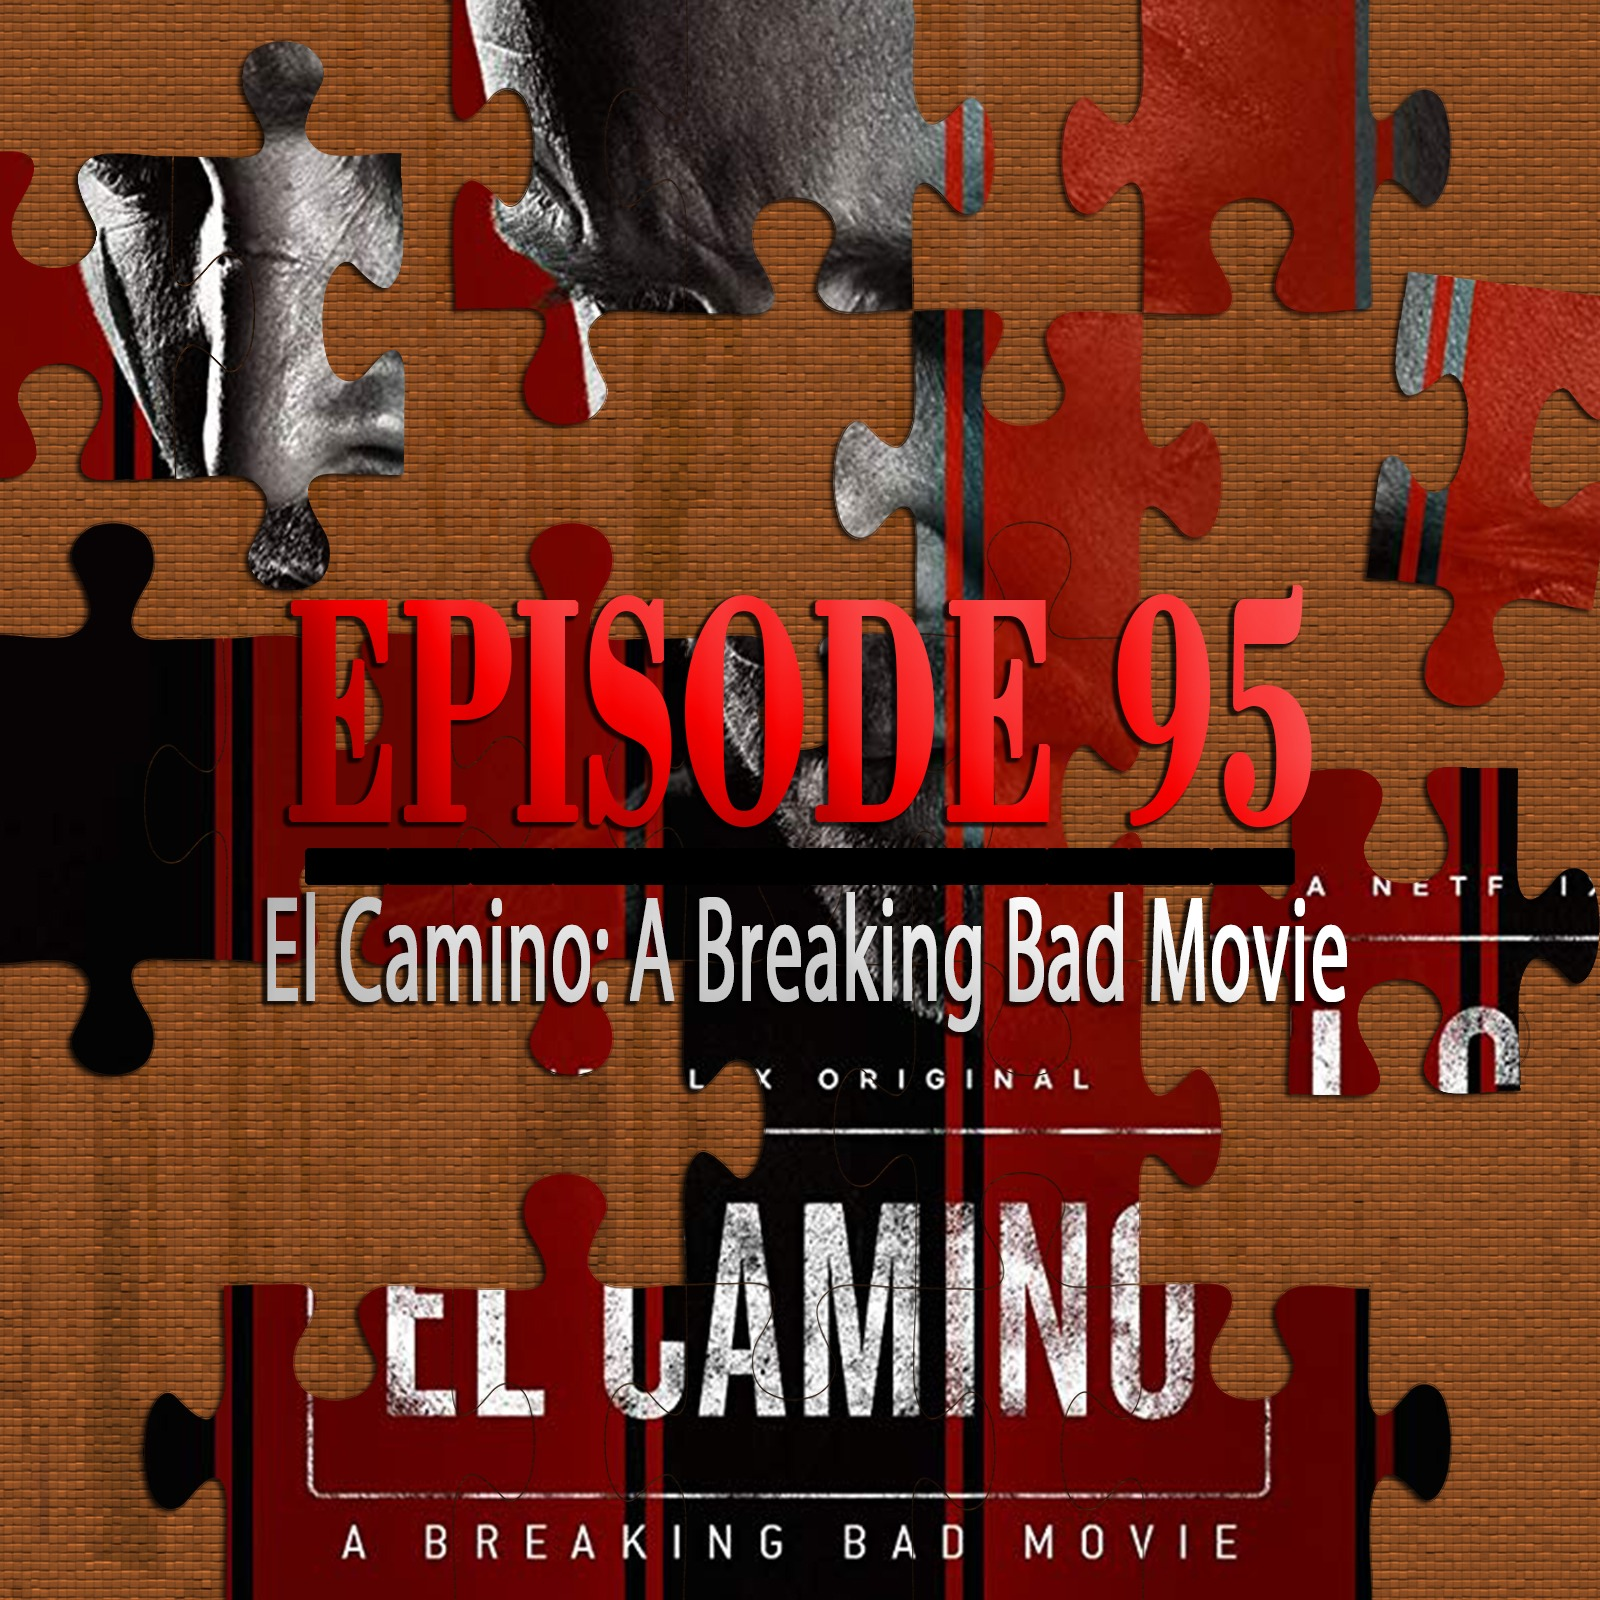 El Camino: A Breaking Bad Movie (Featuring David Quinones)